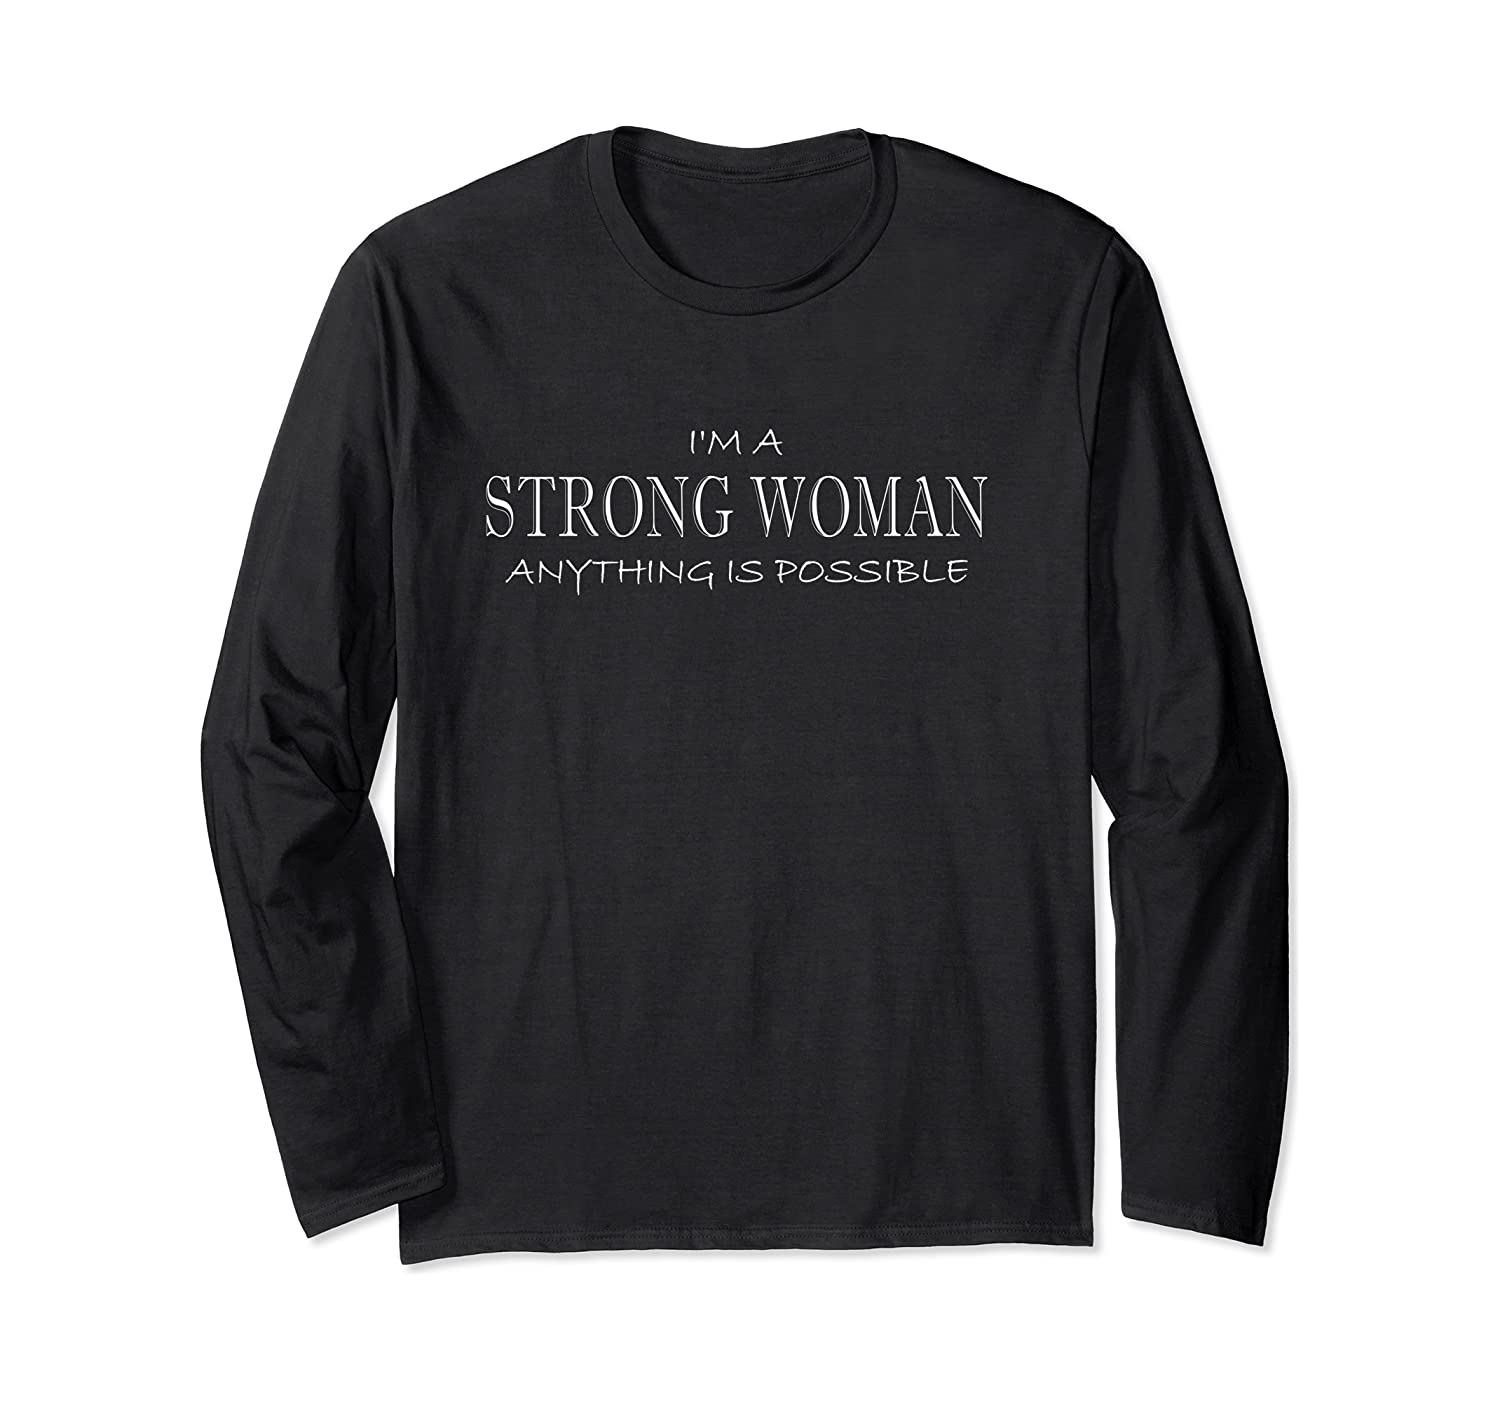 STRONG WOMAN Anything Is Possible anti sexism oppression Long Sleeve